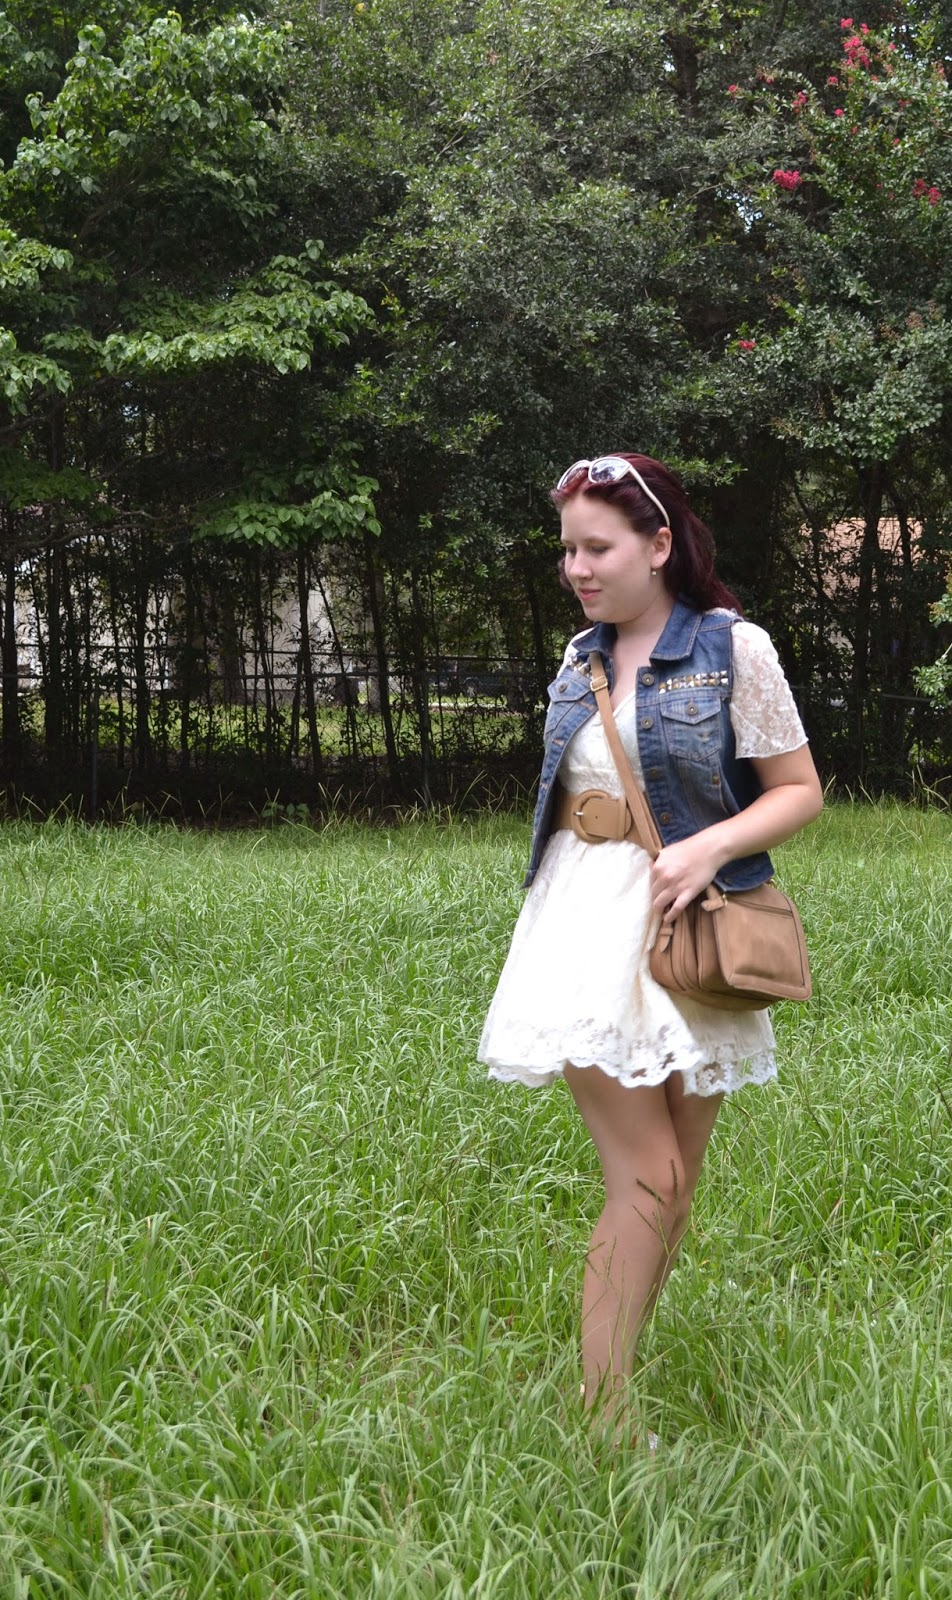 redhead, red-haired blogger, red hair, lace dress, denim vest, outfit, styling, southern blogger, outfit bllogger, personal style blogger, Gabby, A Whispered Wish, wedges